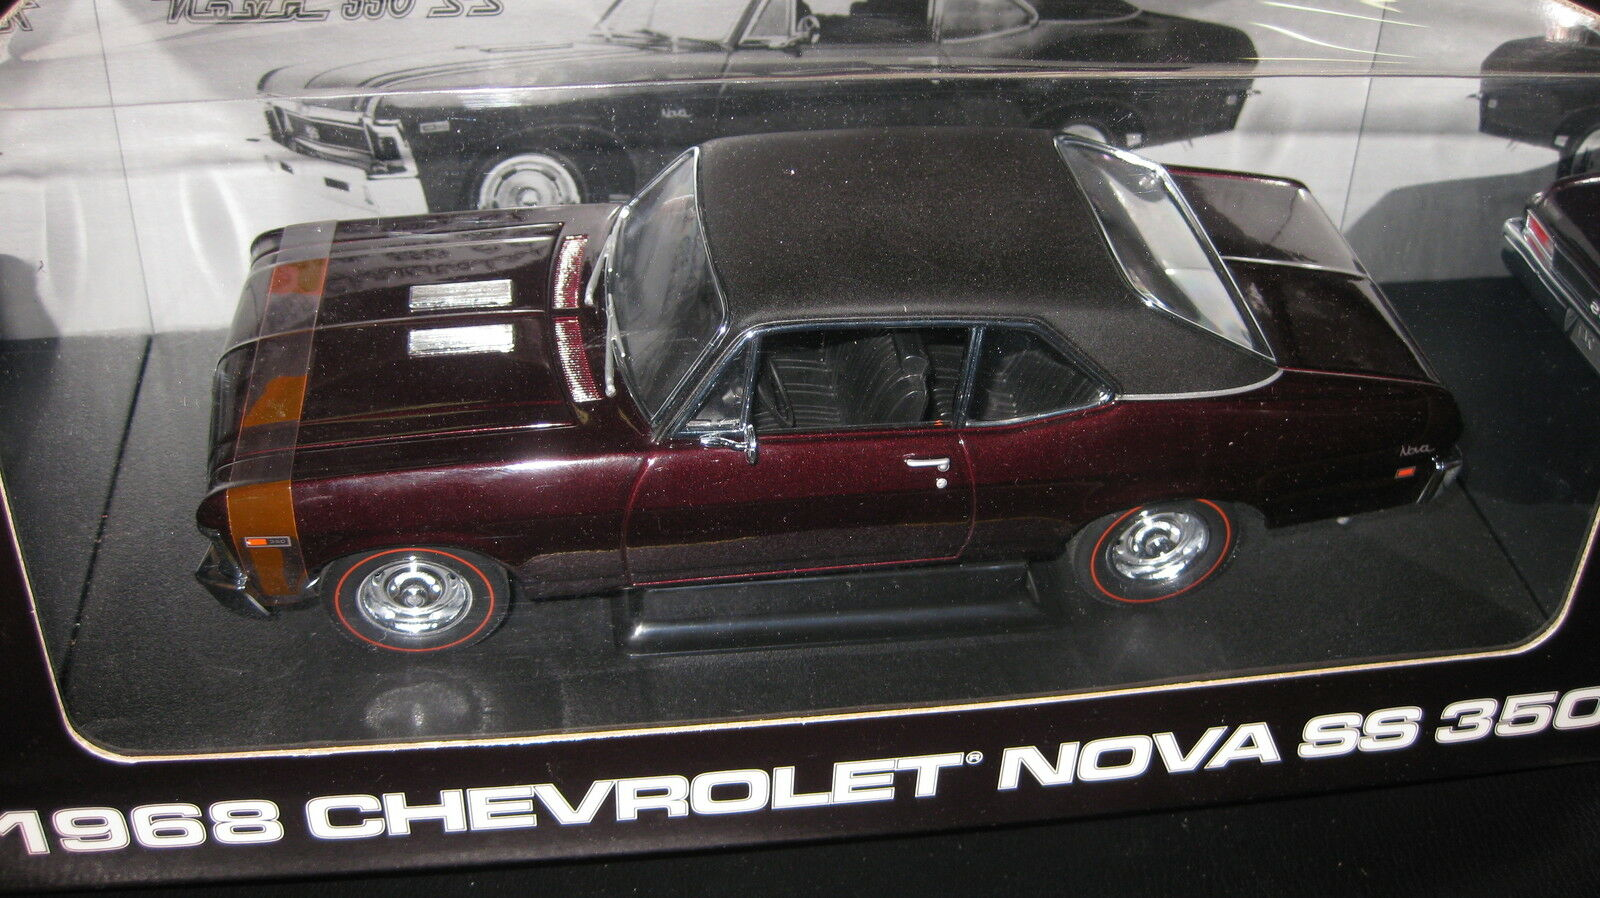 1.18 1968 CHEVROLET NOVA SS 350 PEACHSTATE COLLECTIBLES  BY GMP LTD ED AWESOME  offres de vente